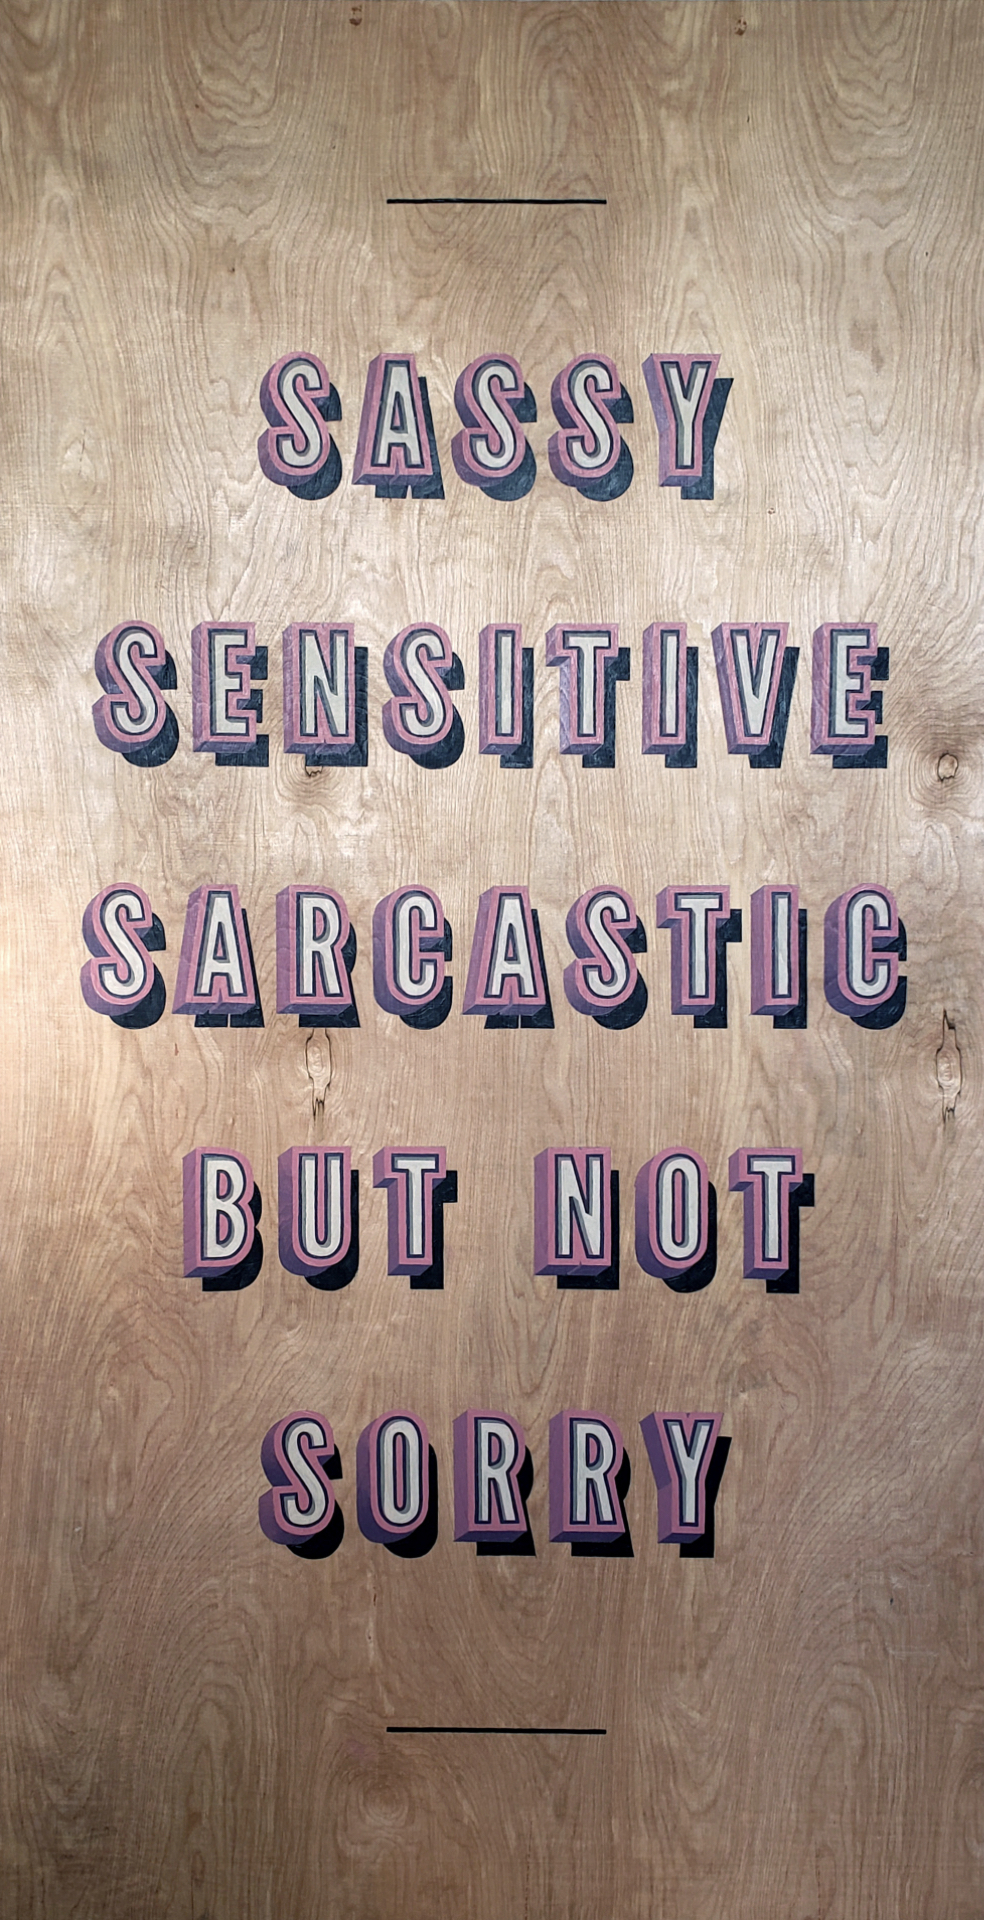 SassySensitiveSarcastic1_handpainted_sign_dimensional_wood_pink_humor.jpg